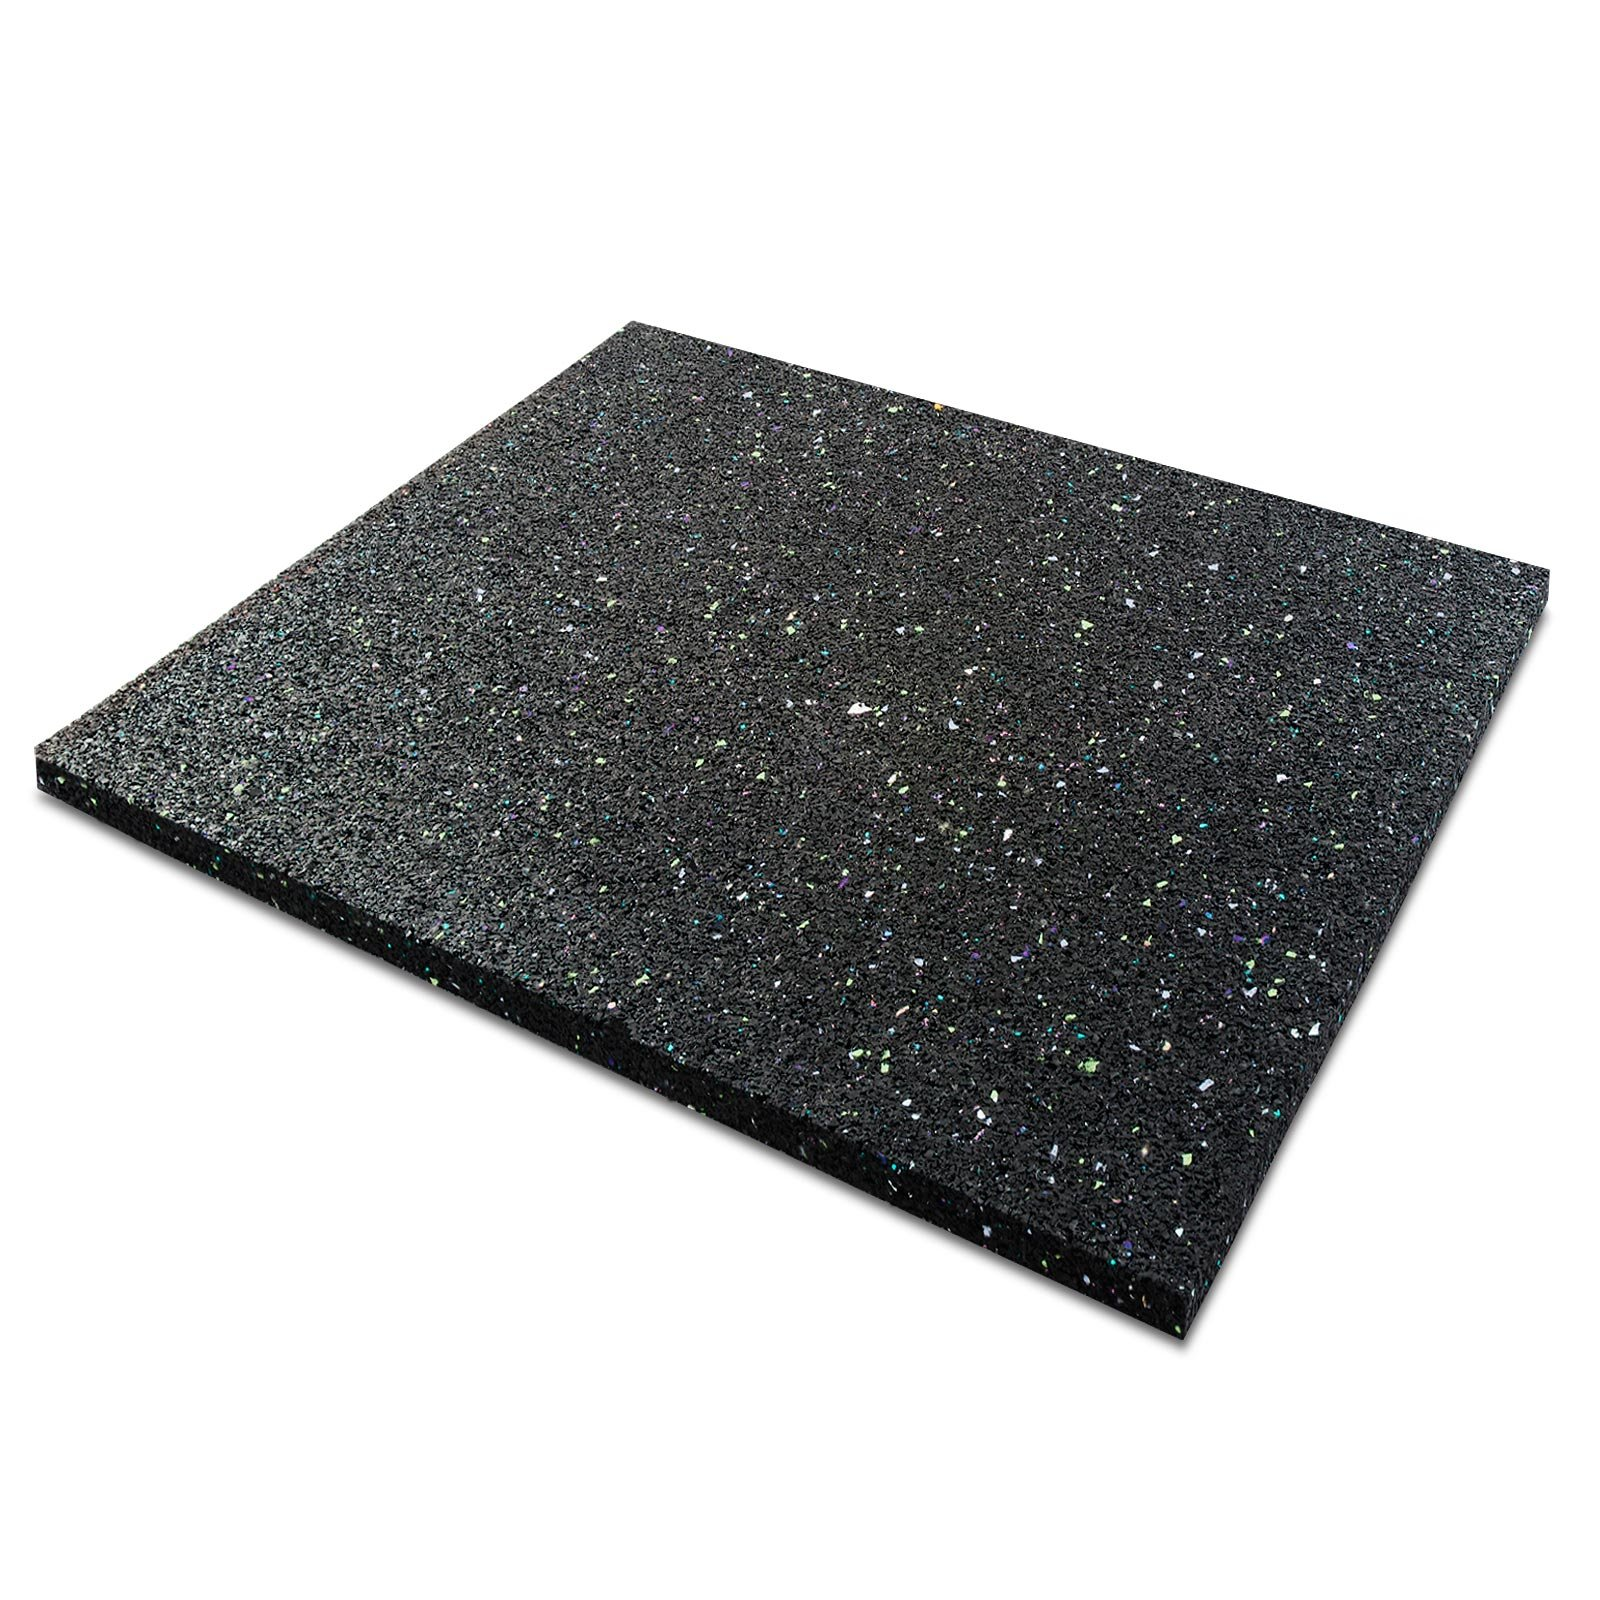 casa pura Anti-Vibration Pad | Rubber Vibration Isolator Mat | Matting for Washing Machines, Washers, Dryers and Appliances | Available in 6 Sizes | 24x40x0.4'' by casa pura